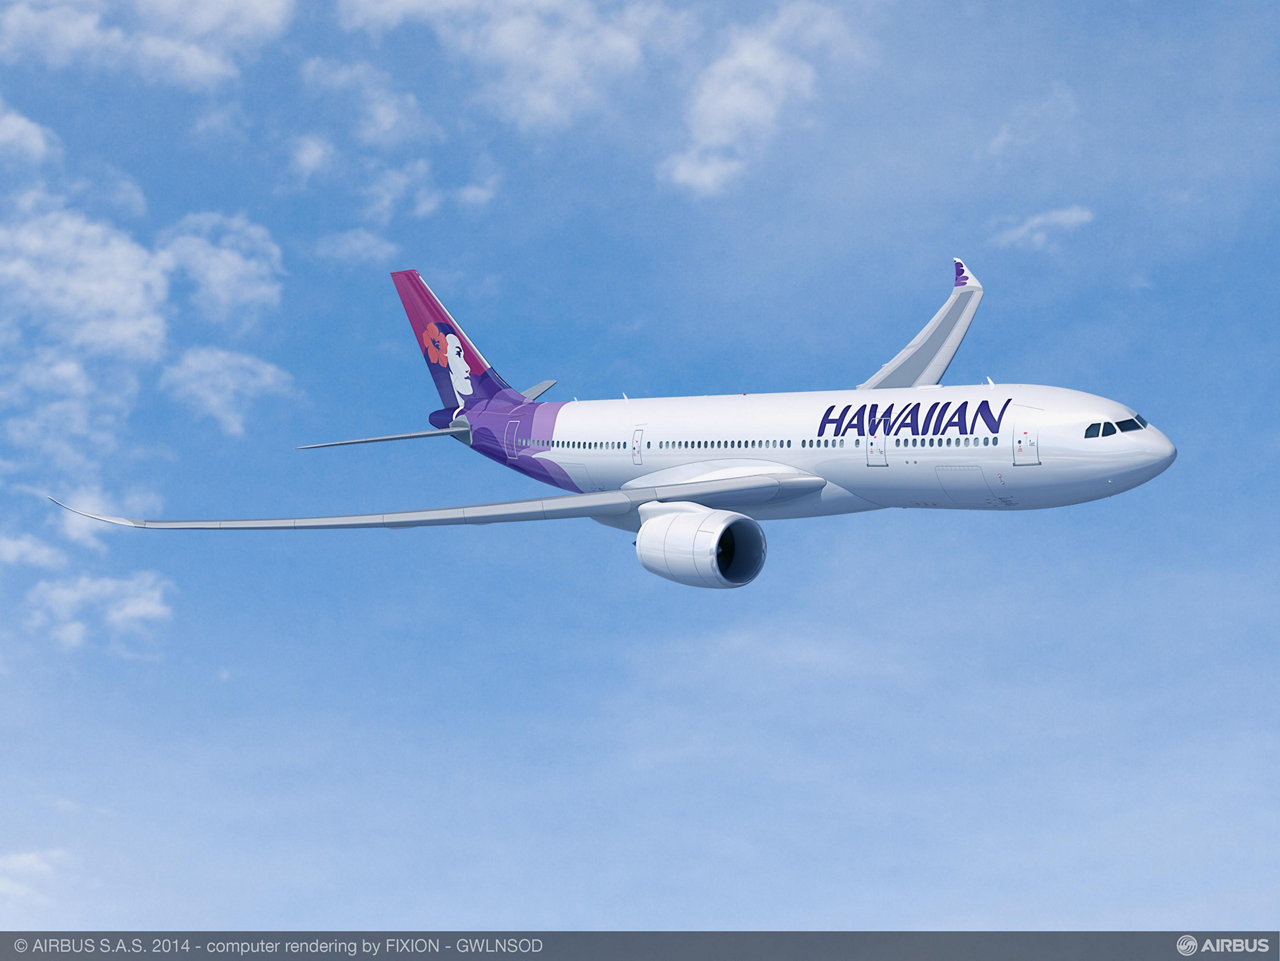 Hawaiian Airlines has finalized its order for six Airbus A330-800neo (new engine option) aircraft from Airbus, which follows a Memorandum of Understanding (MoU) signed in July 2014